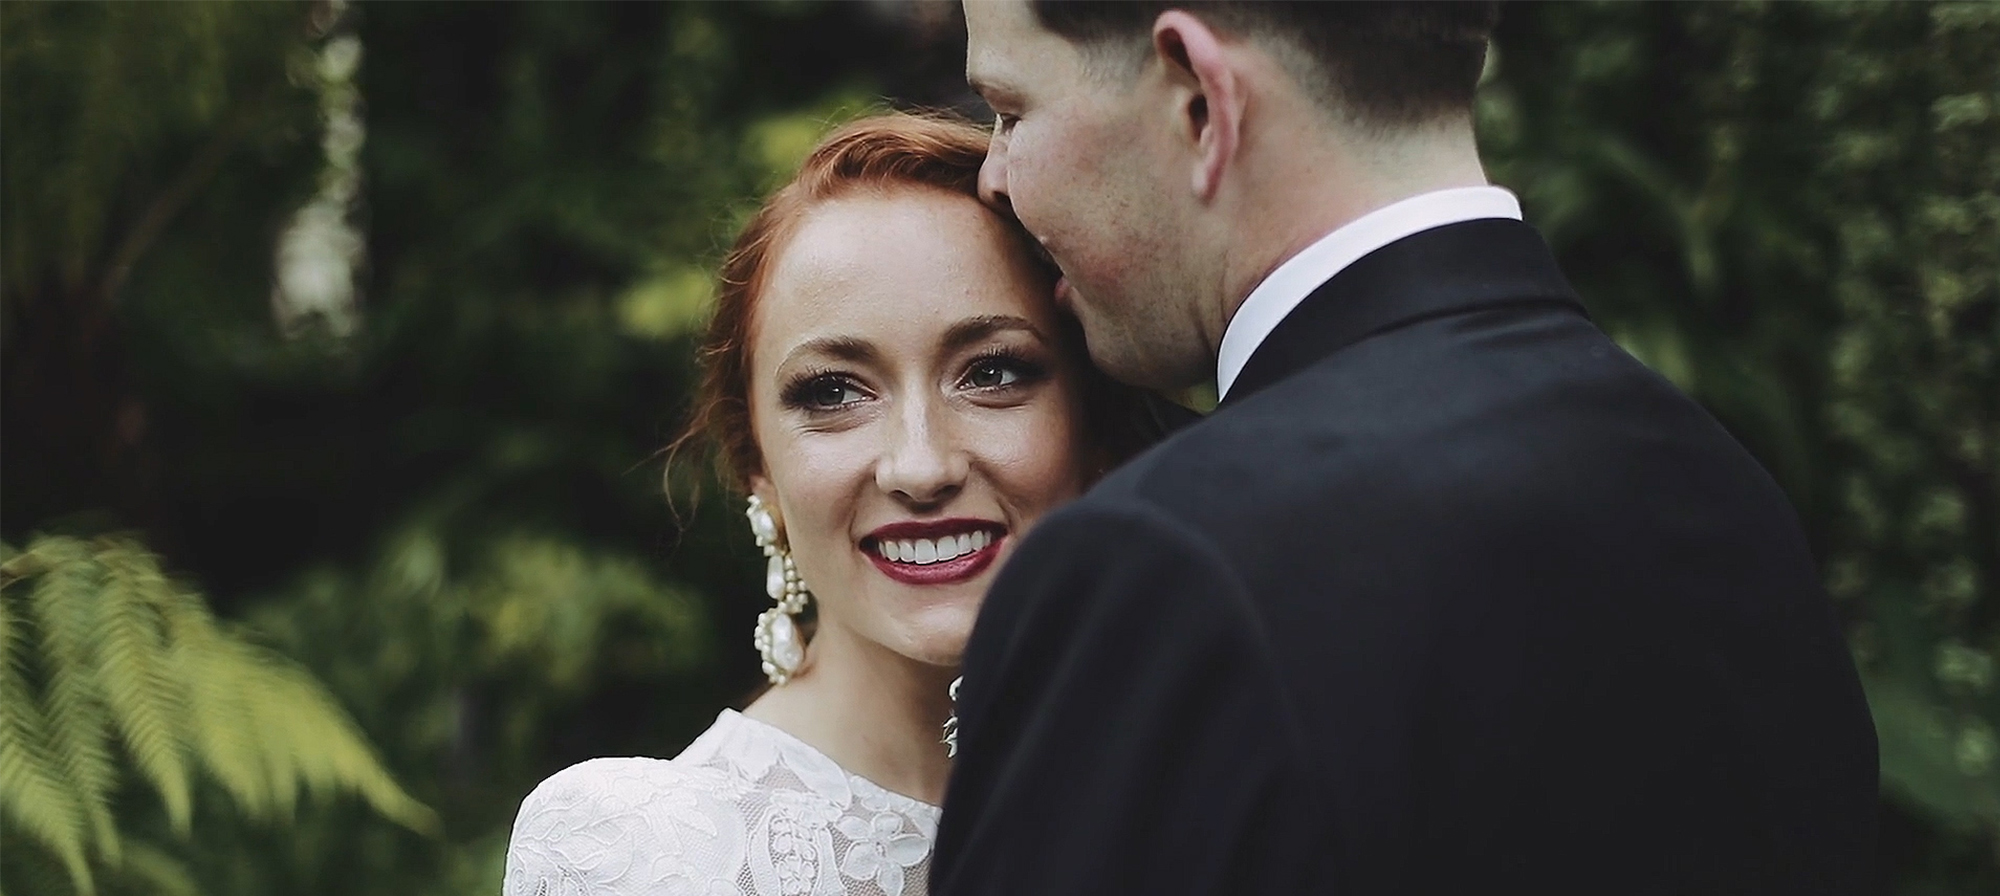 Annette-and-Dani-Films-Cait and Ollie2-wedding-video.jpg